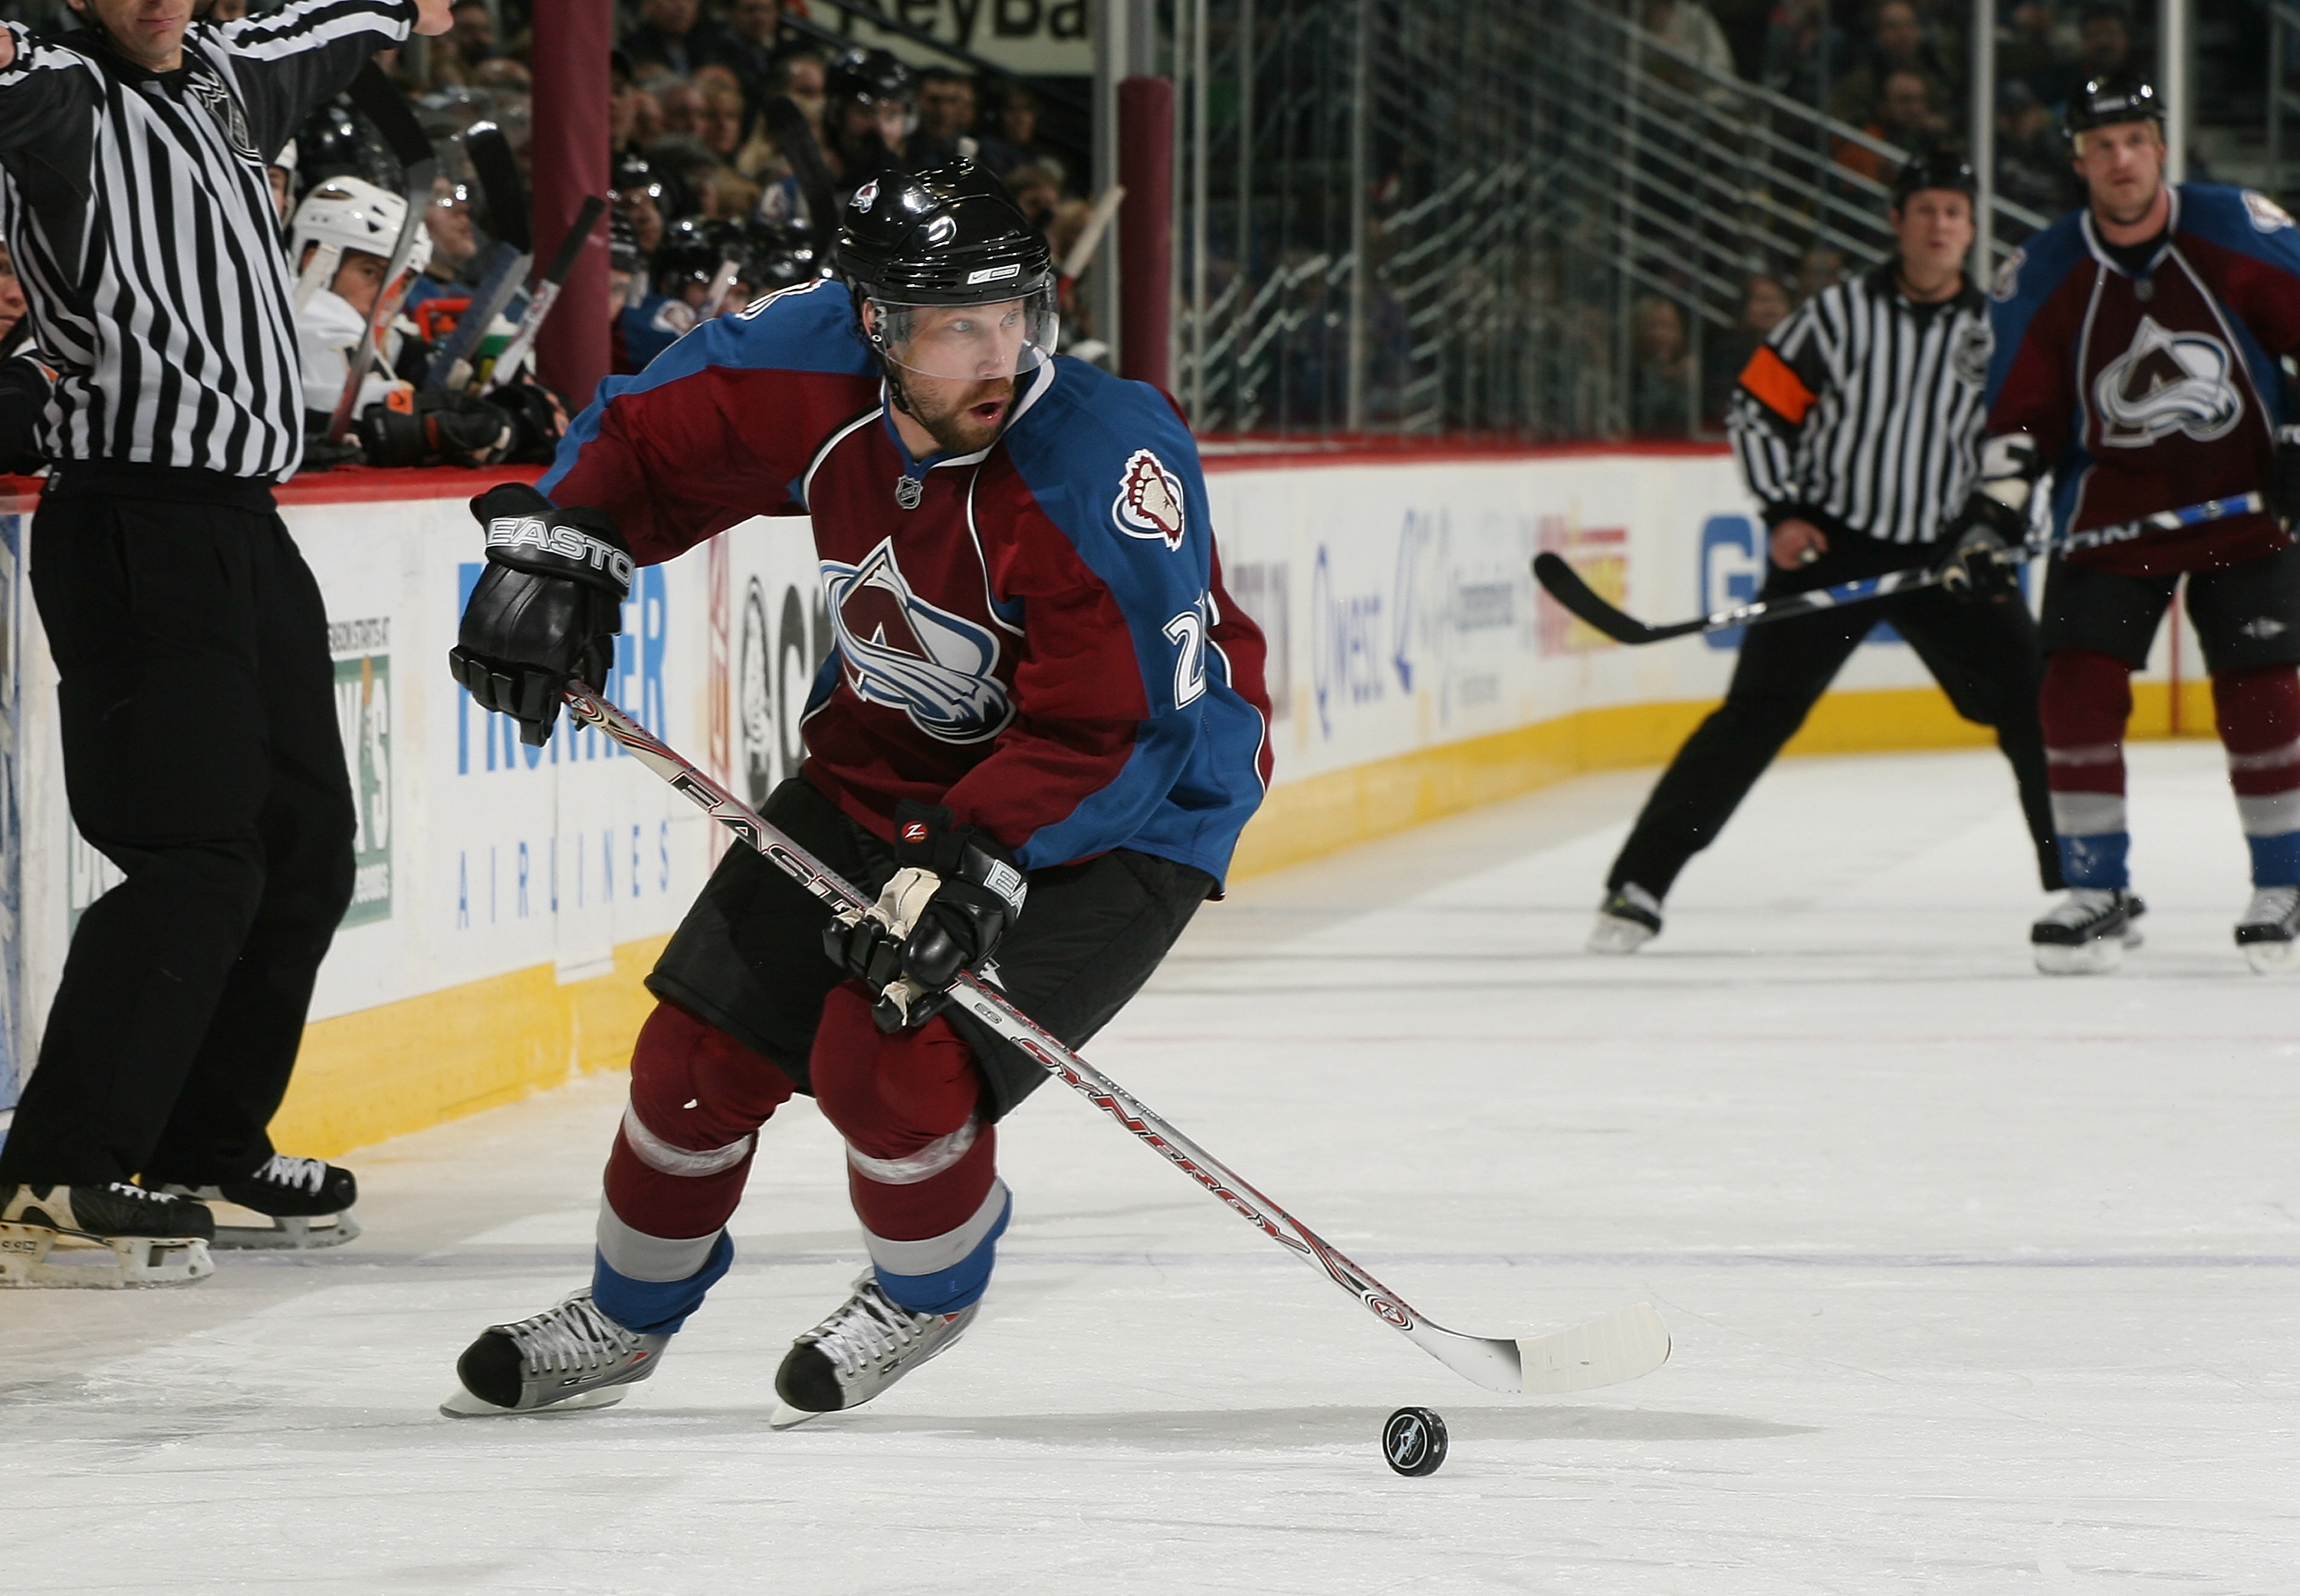 Is All Star center Peter Forsberg on his way back to the NHL?